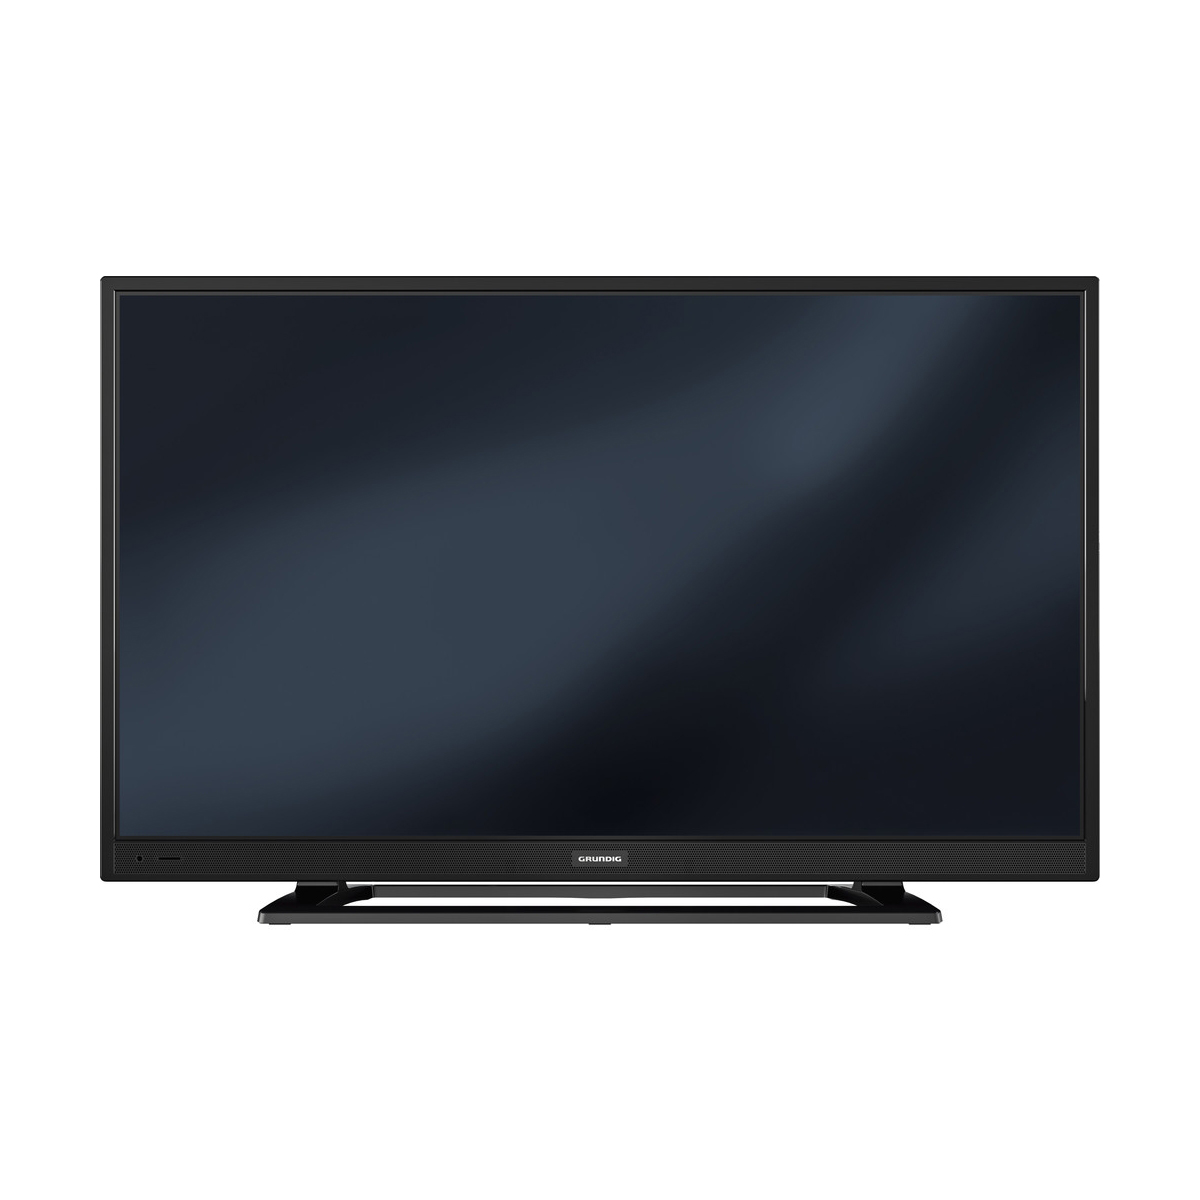 "22"" LED TV with STB"